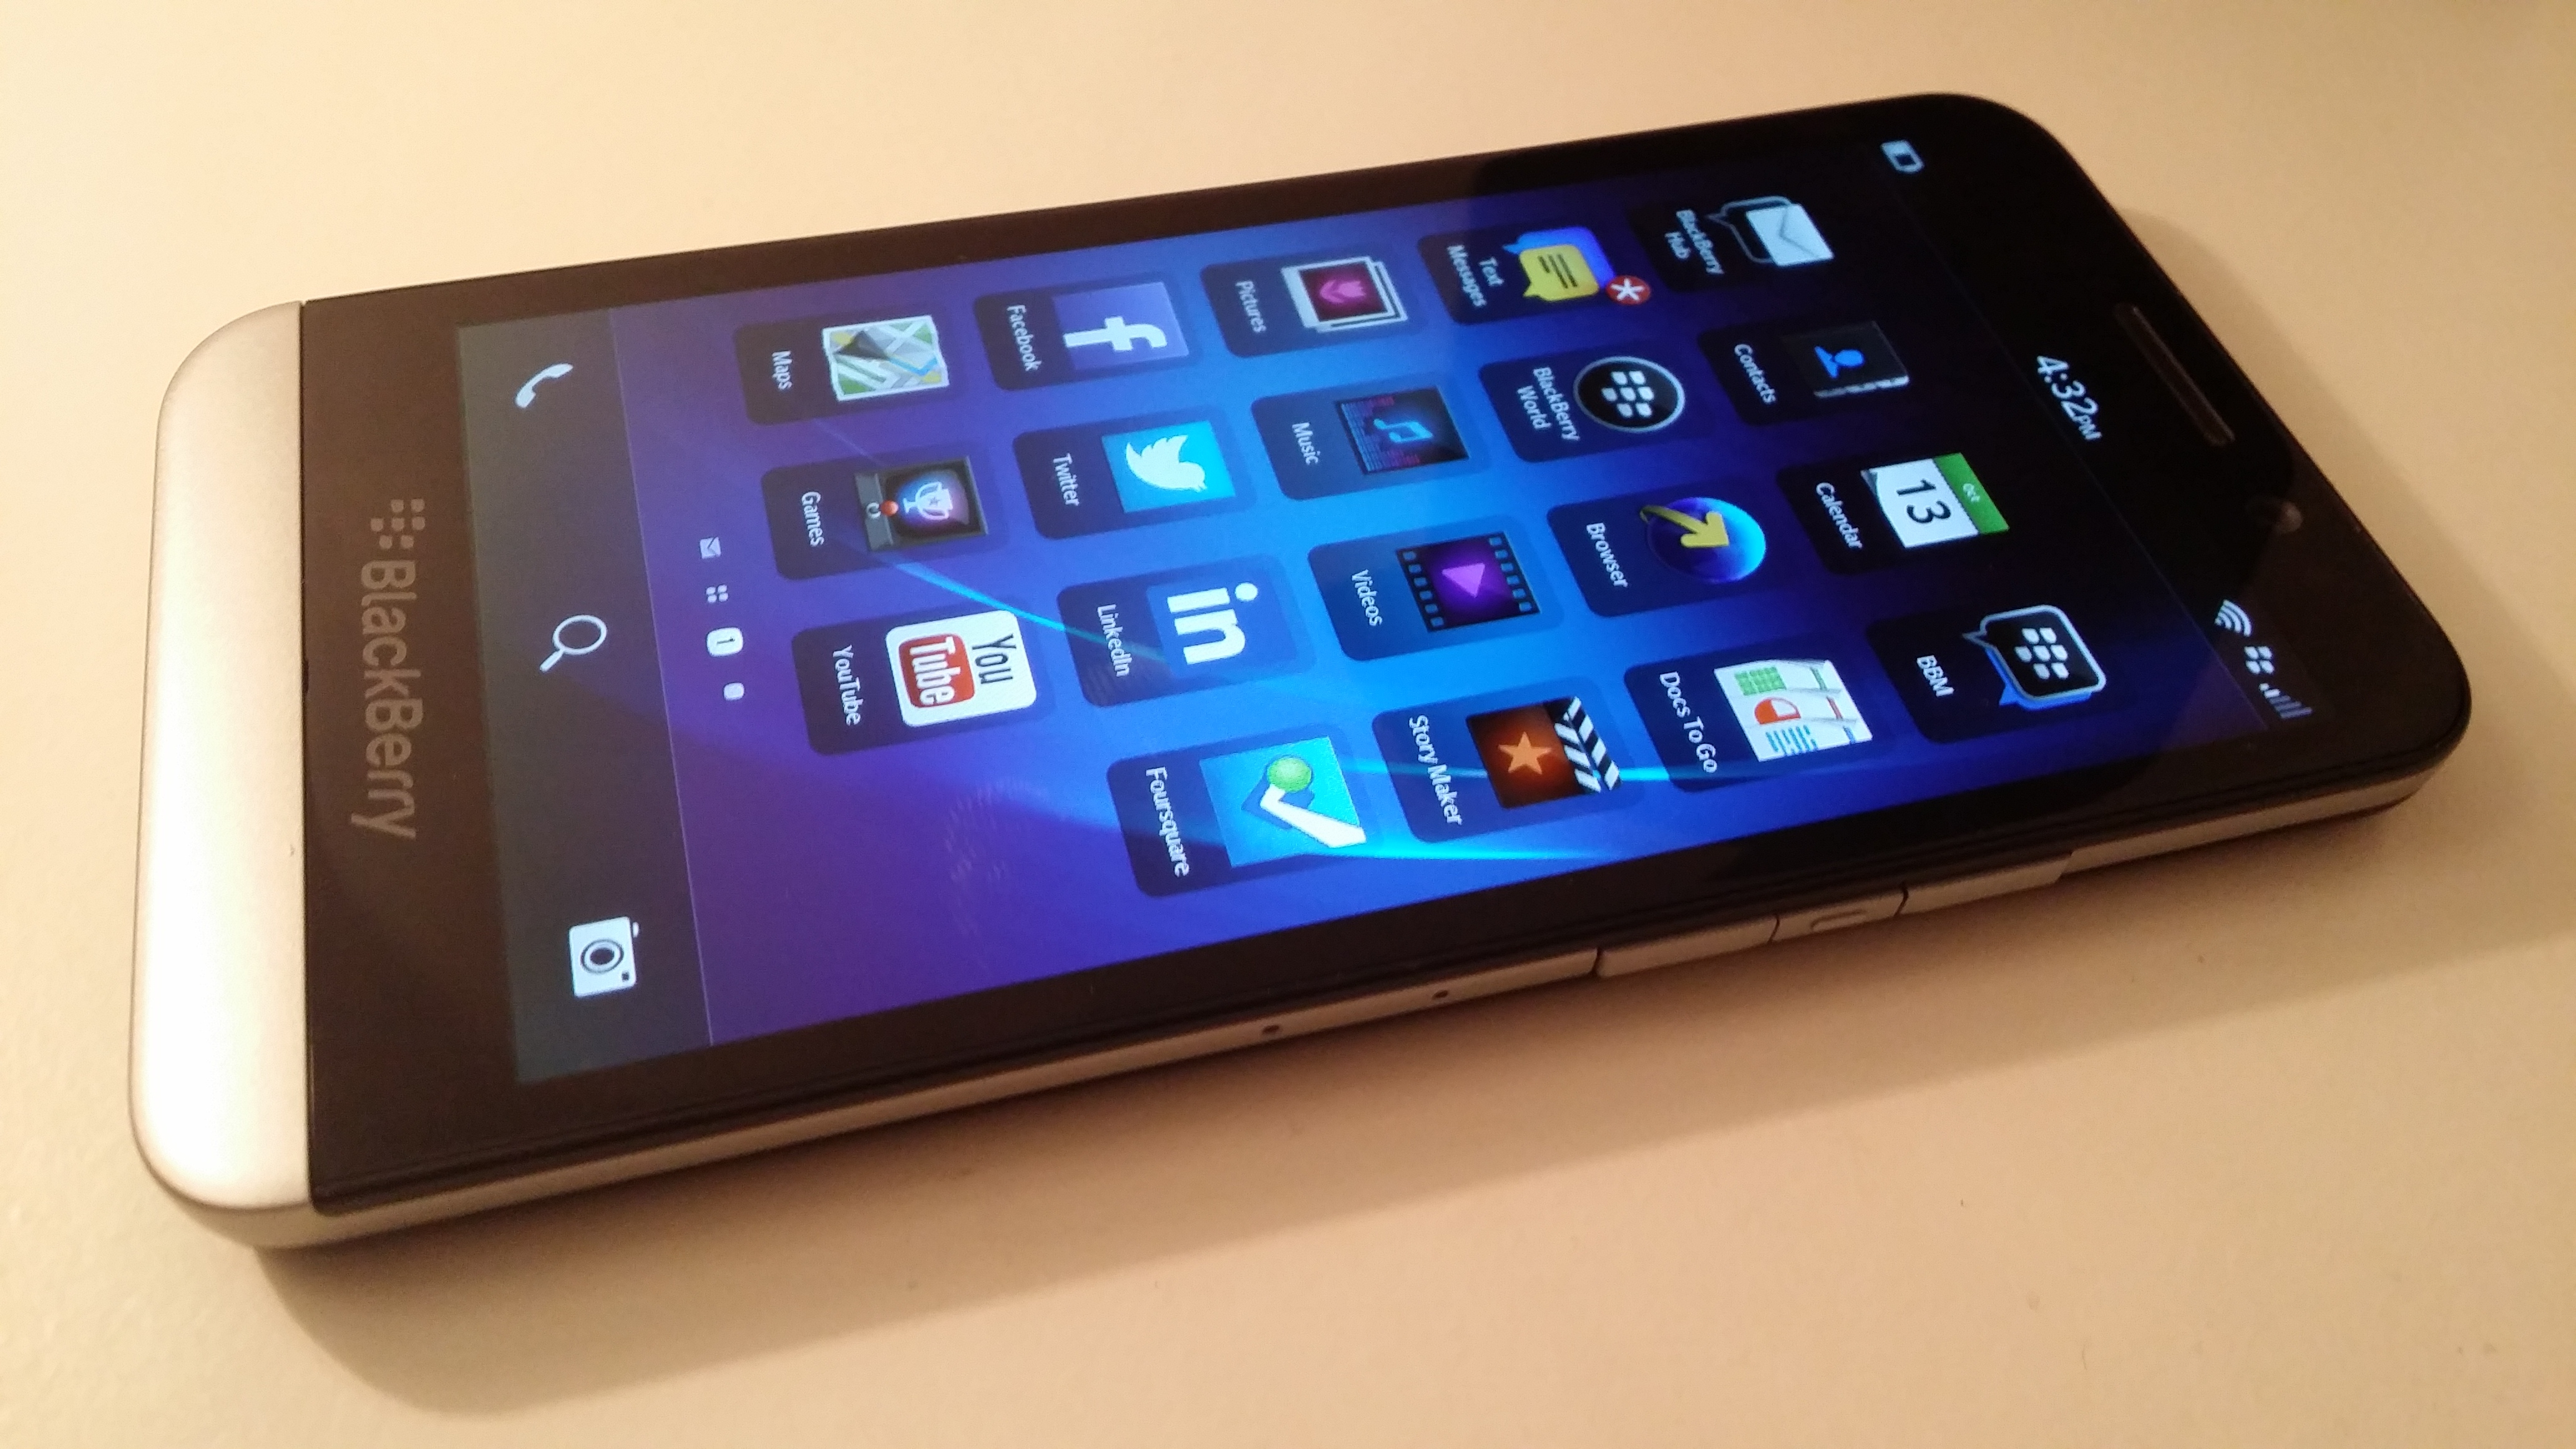 BlackBerry Z30 Review: What Exactly Is the Problem with This Phone?